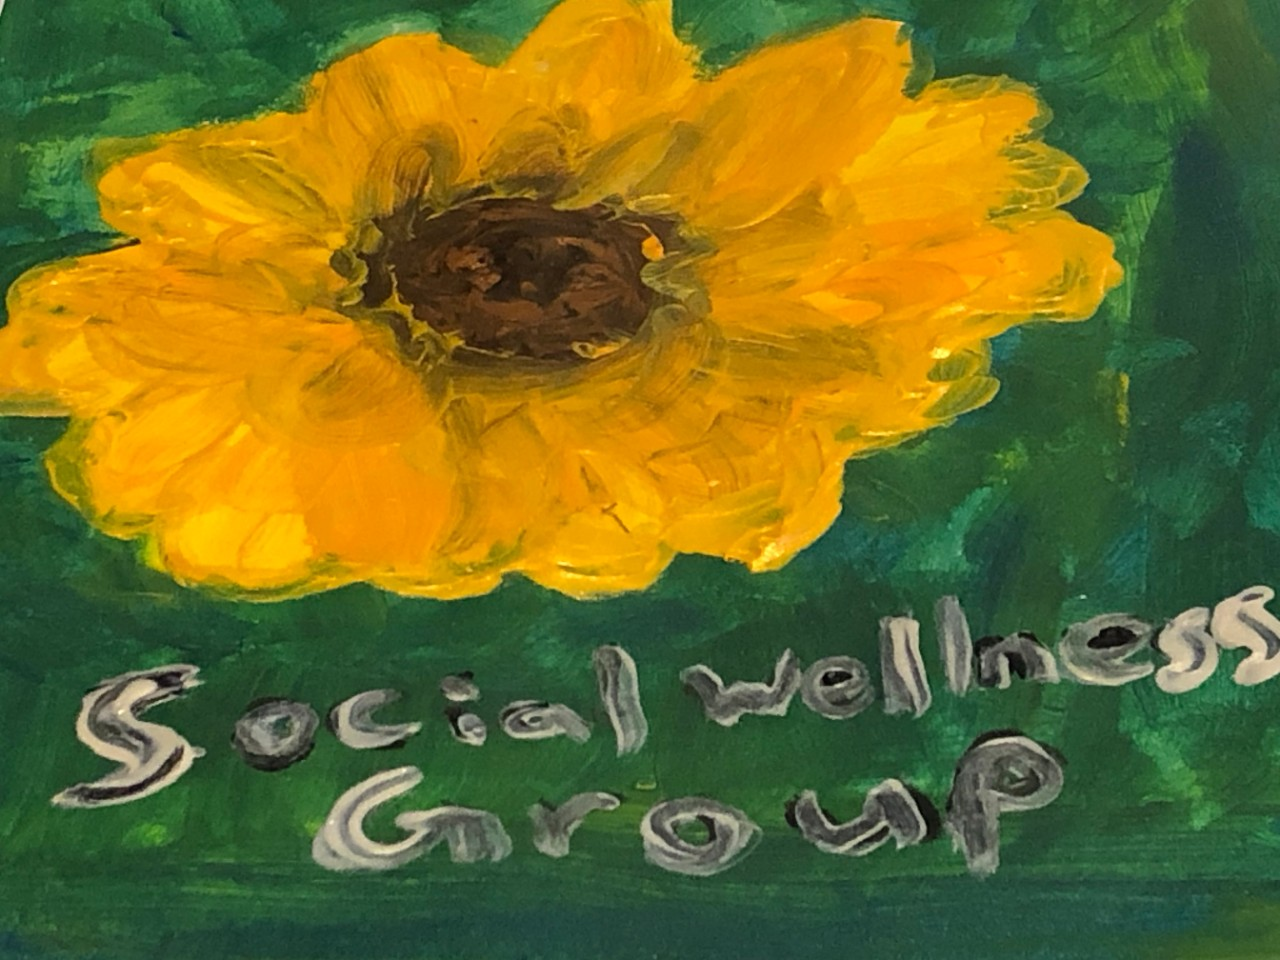 Social Wellness Group flower logo